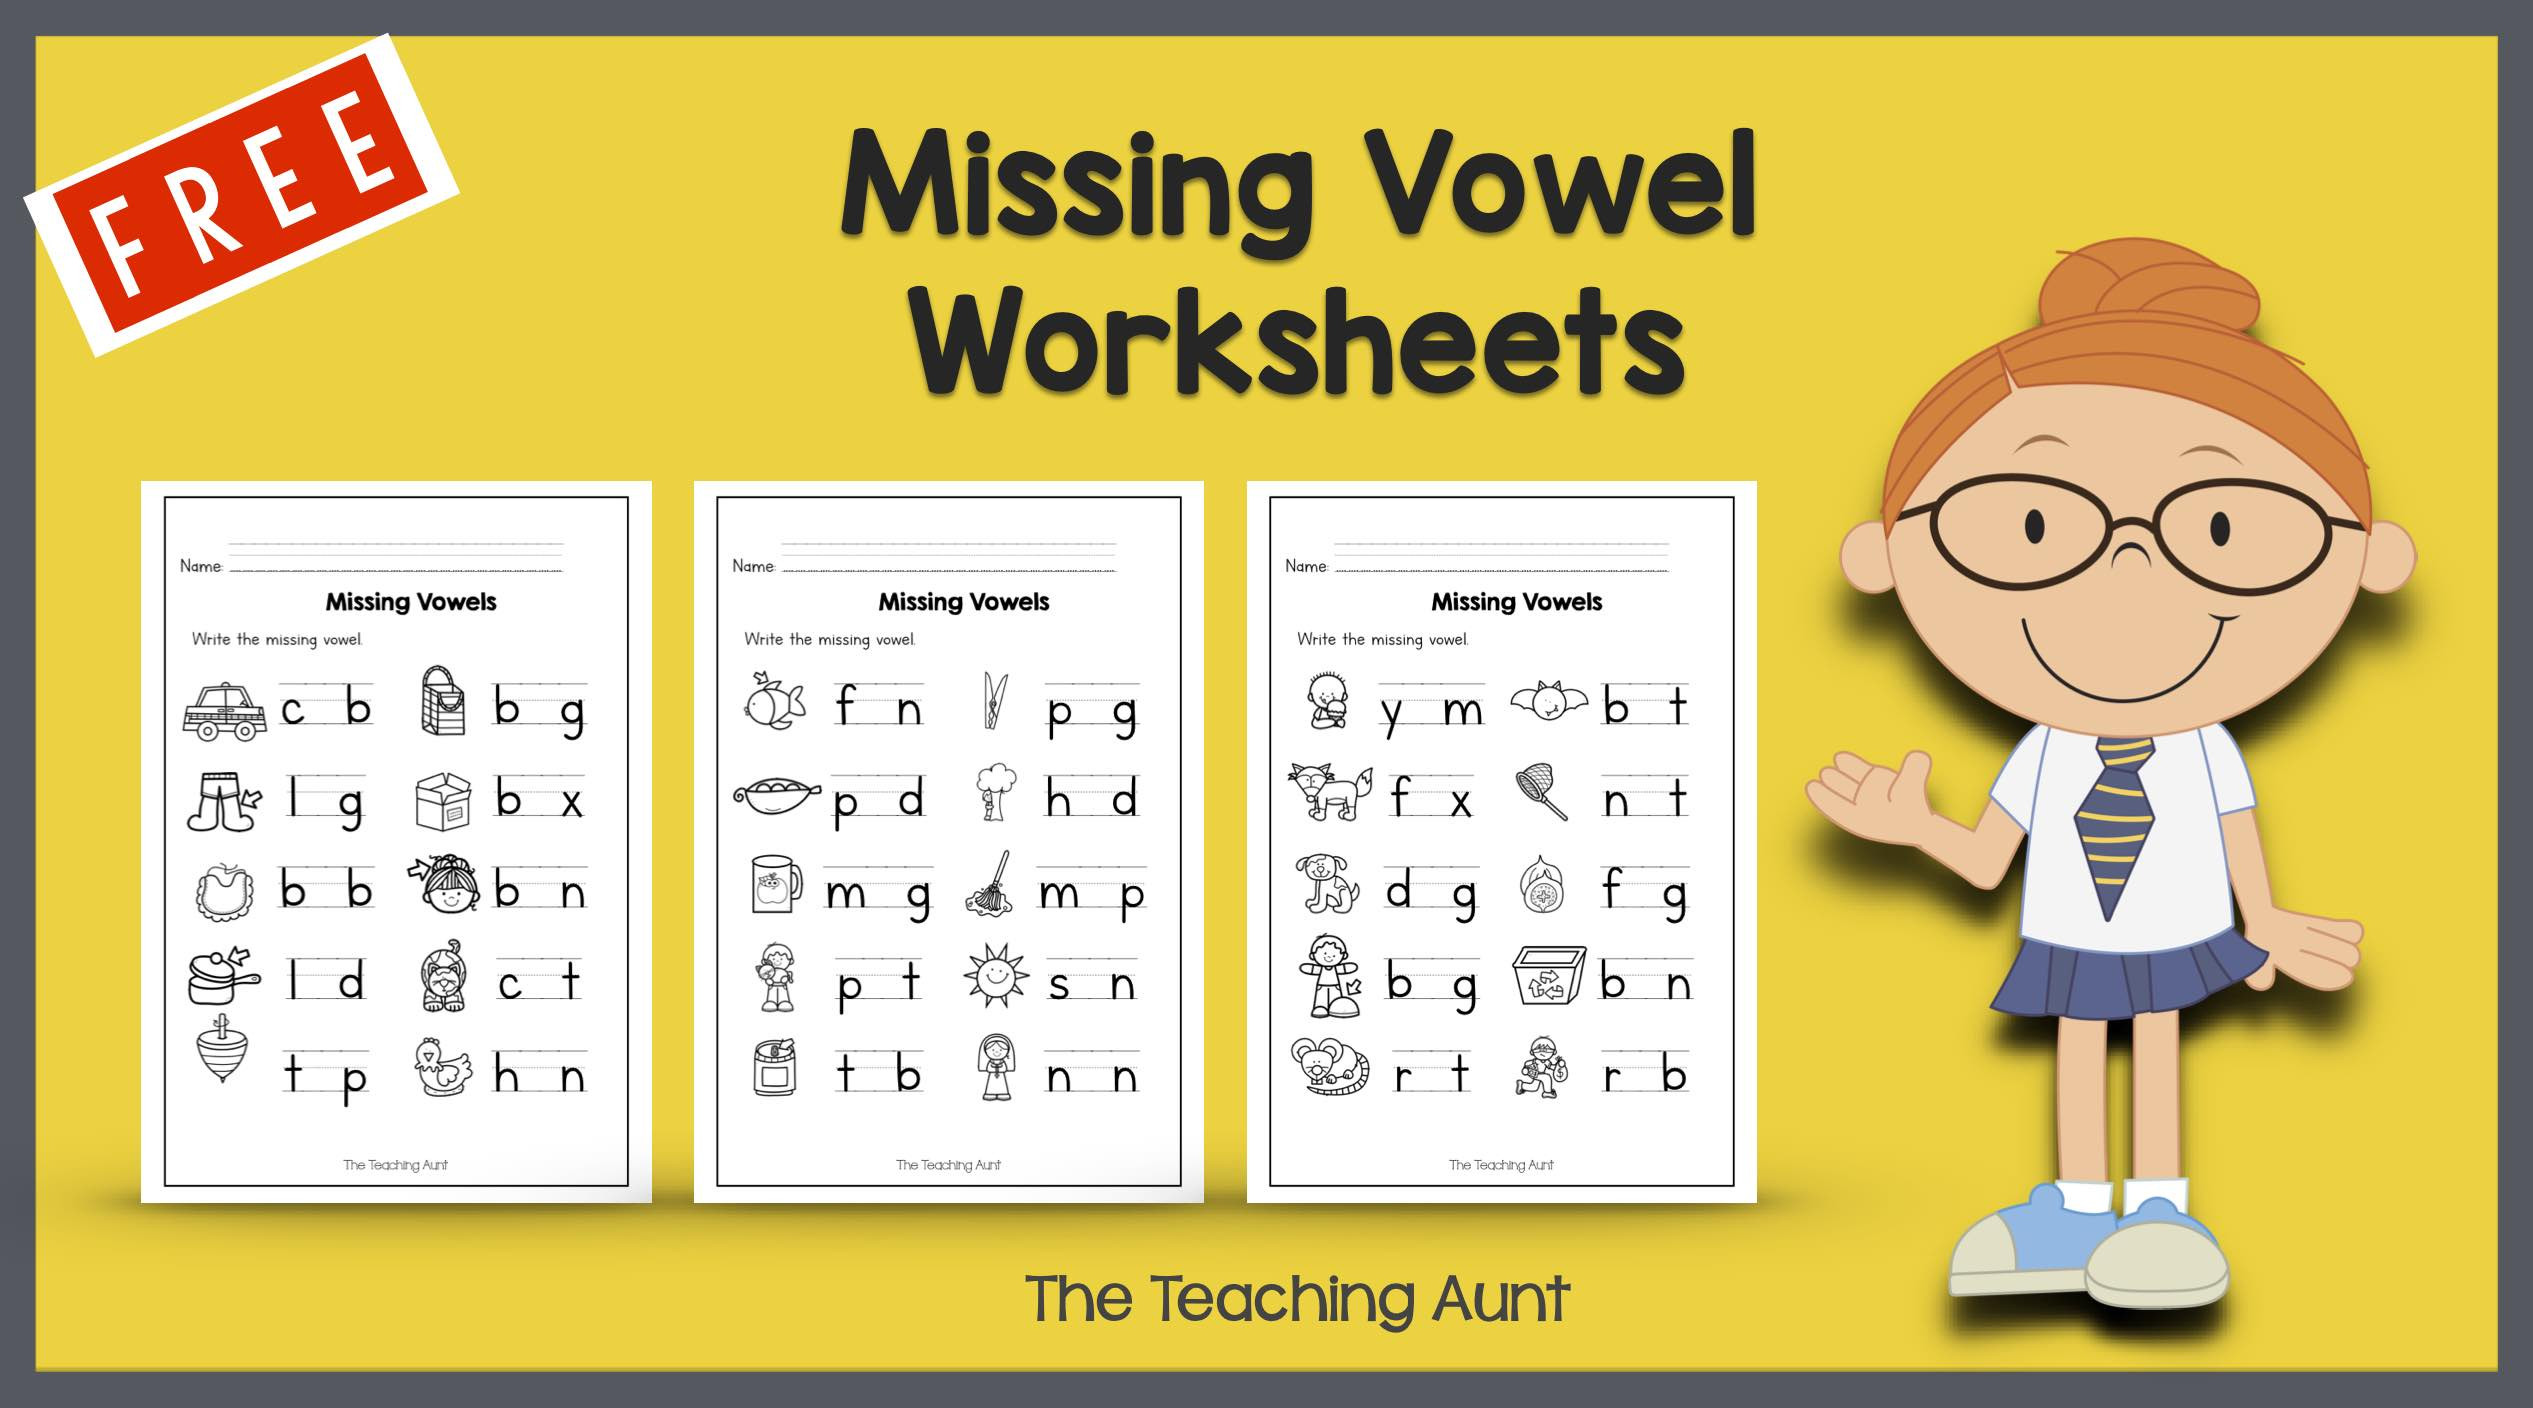 Free Printable Long Vowel Worksheets Missing Vowel Worksheets for Kindergarten the Teaching Aunt